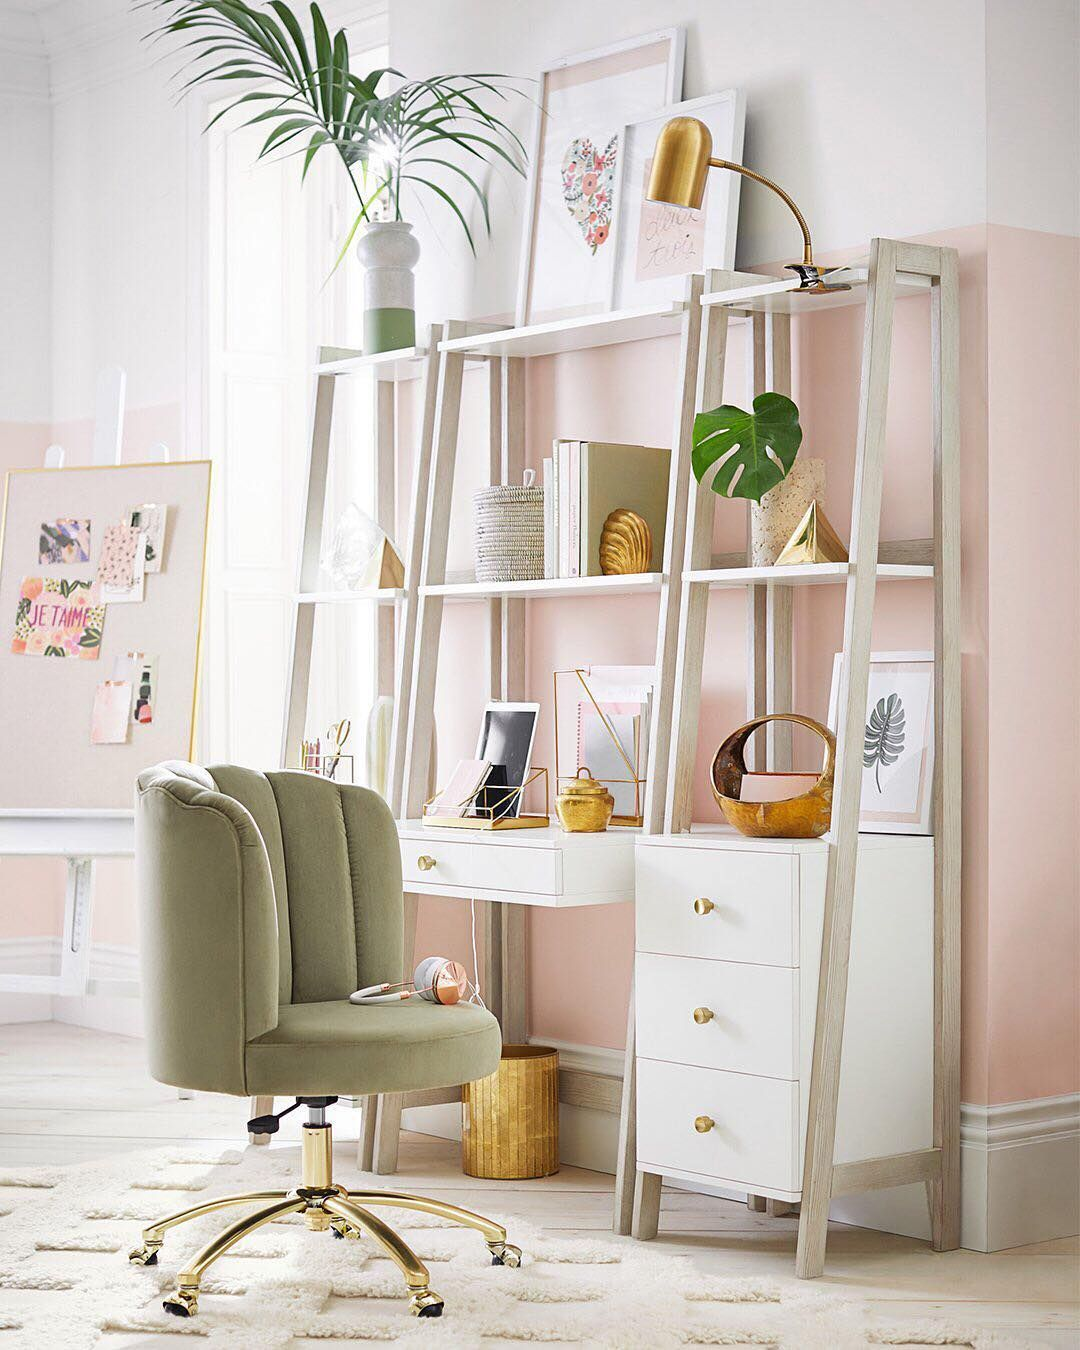 Smart And Chic—this Home Office Is A Dream Come True